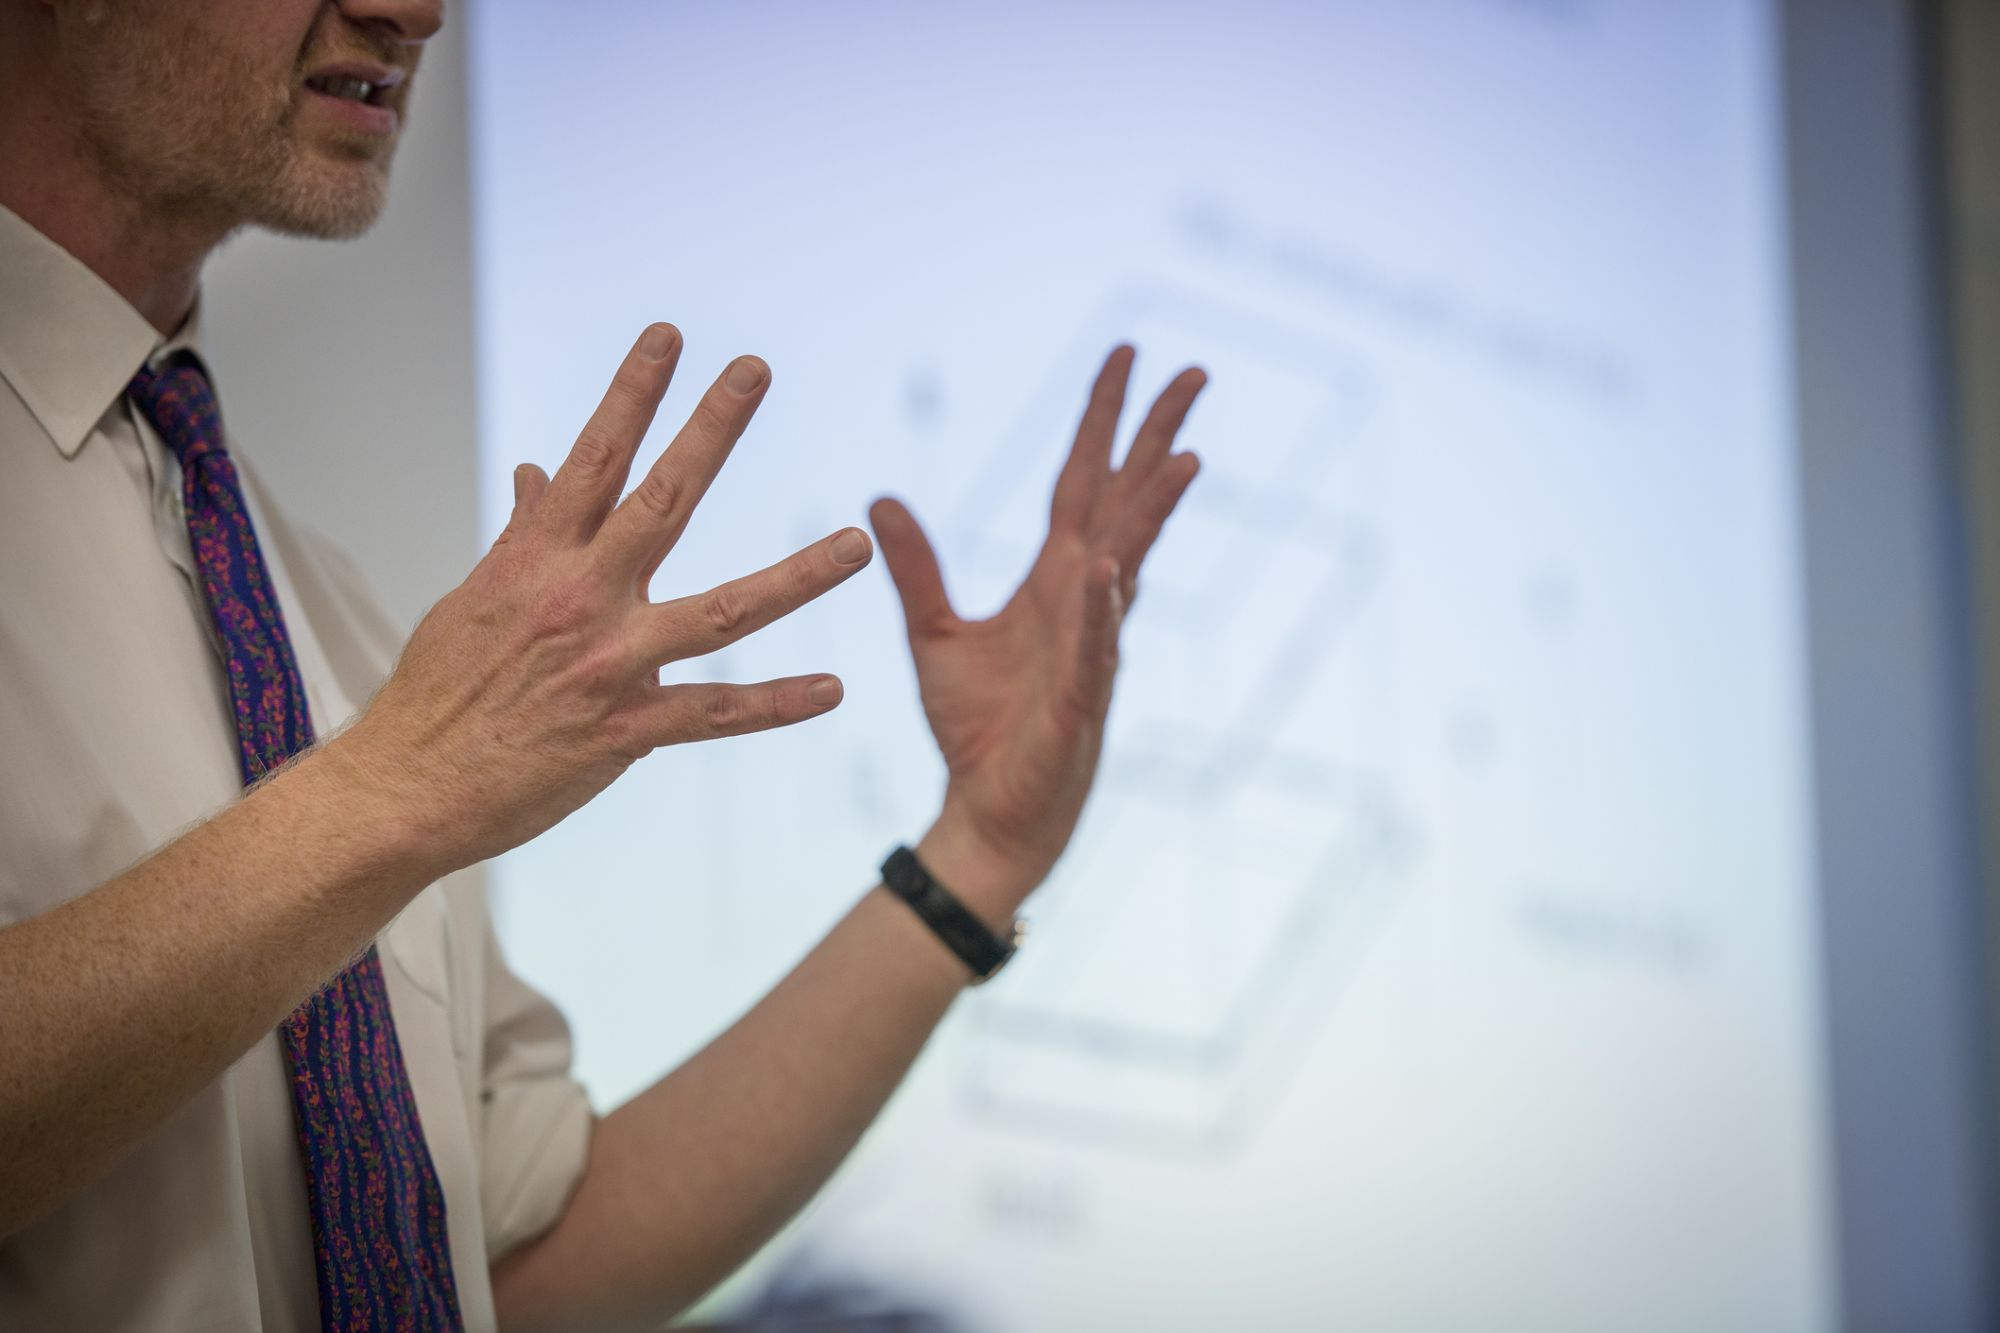 Hand Language Gestures And Body